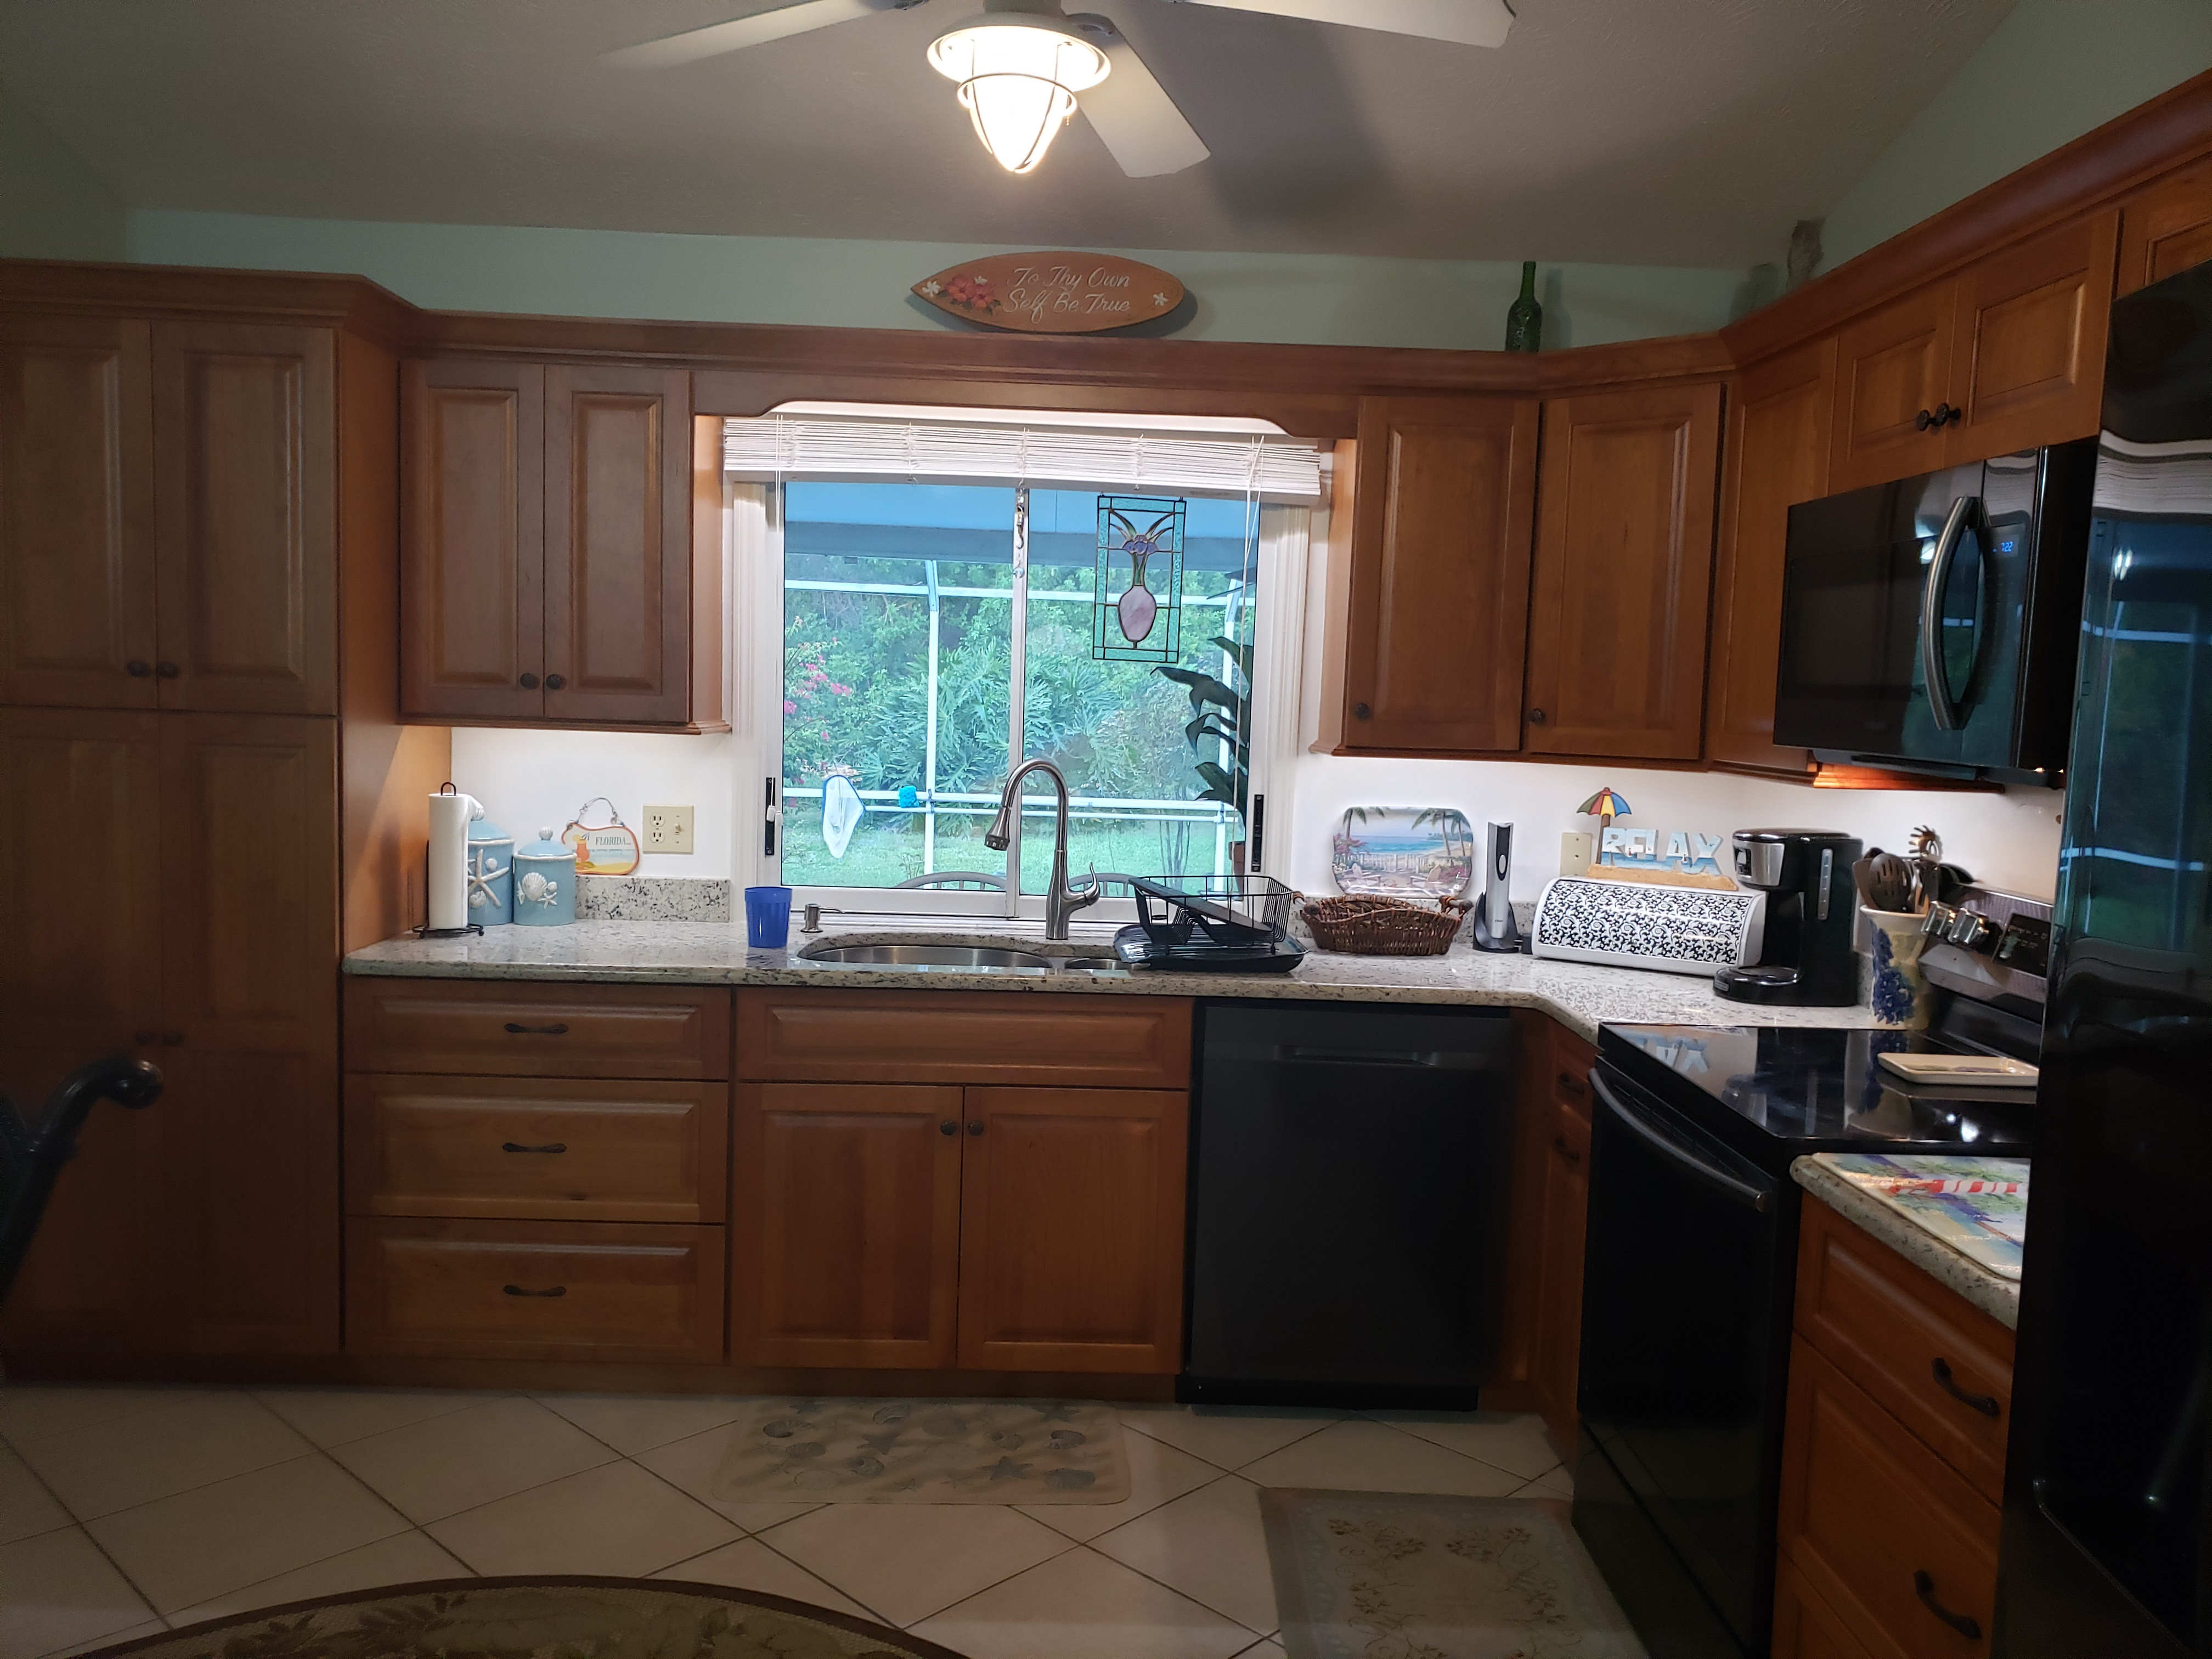 Kitchen Remodeling - Cabinet Installation